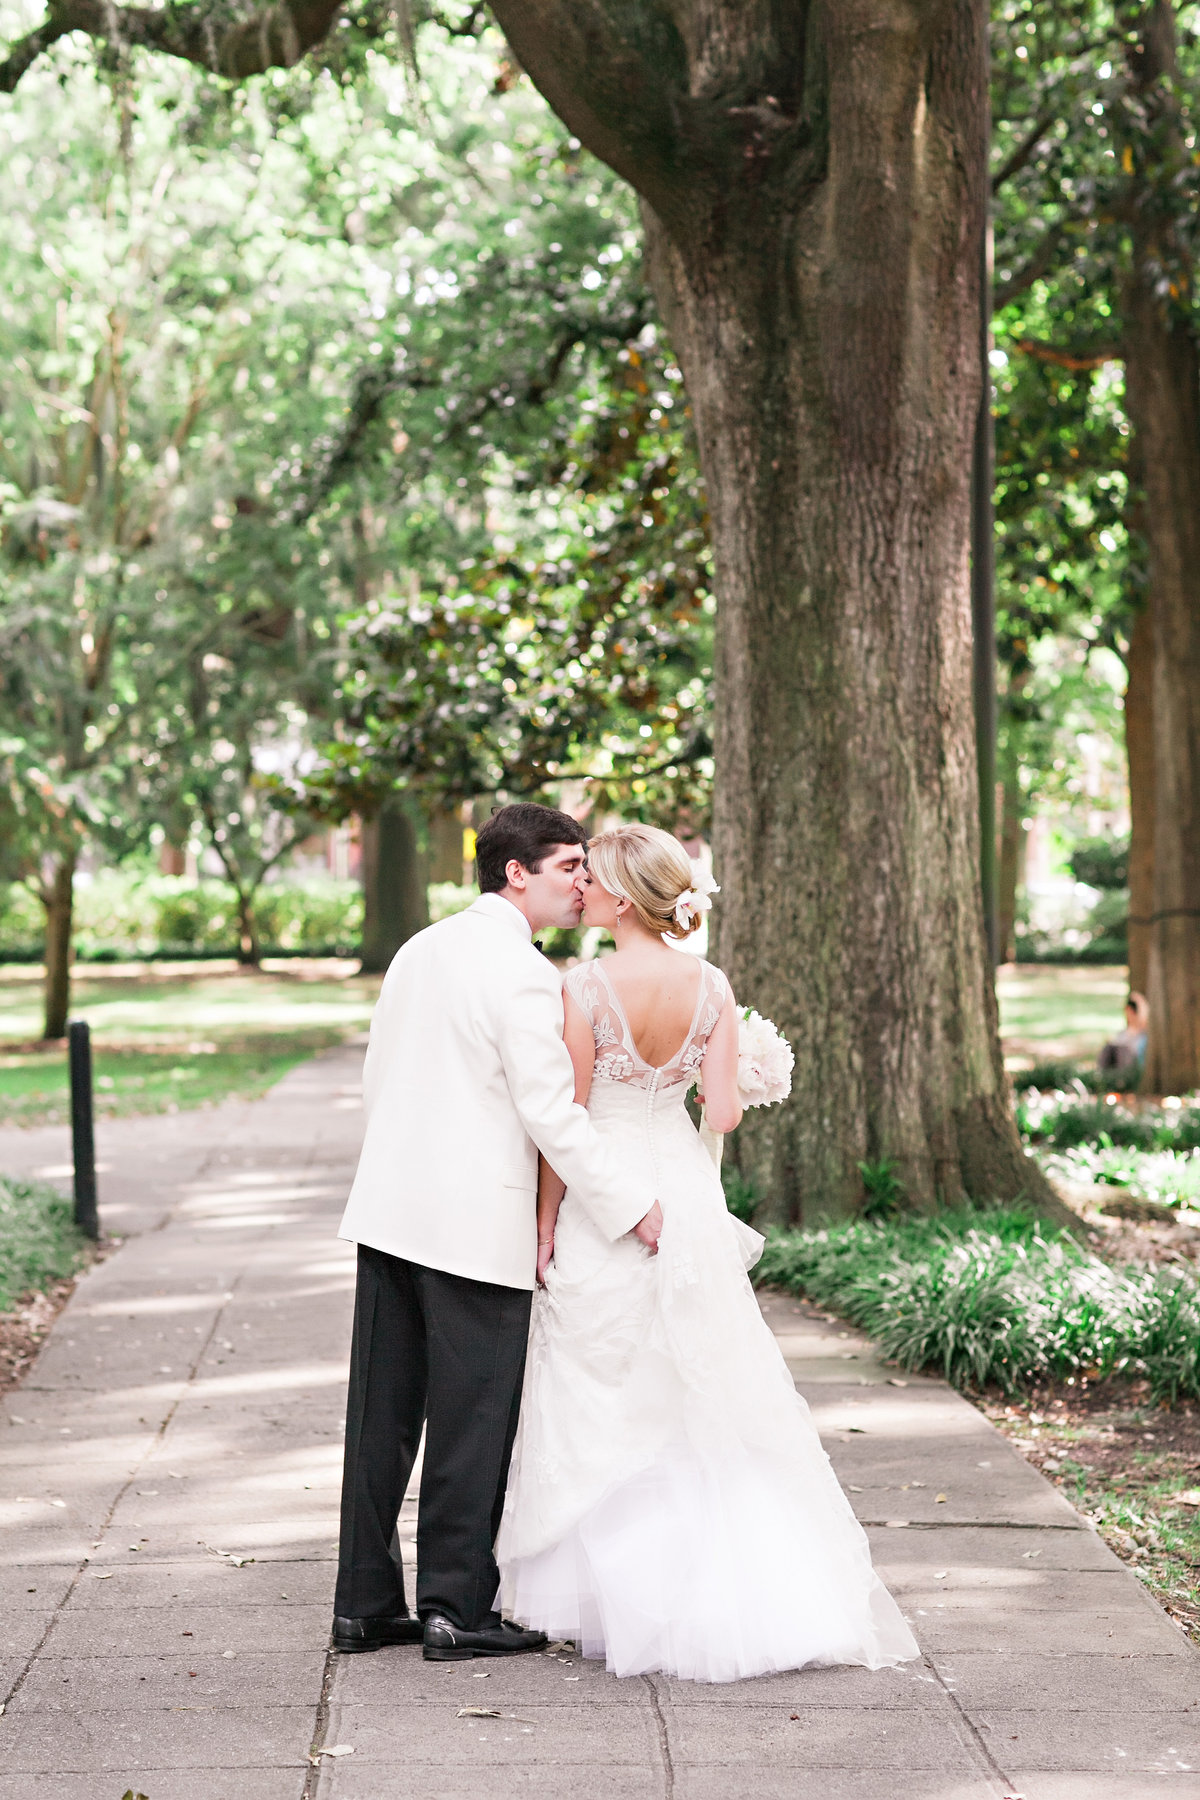 Savannah Bride Groom Forsyth Park Mansion Classic Traditional Catholic Garden Wedding Dress Bouquet Kiss Romantic